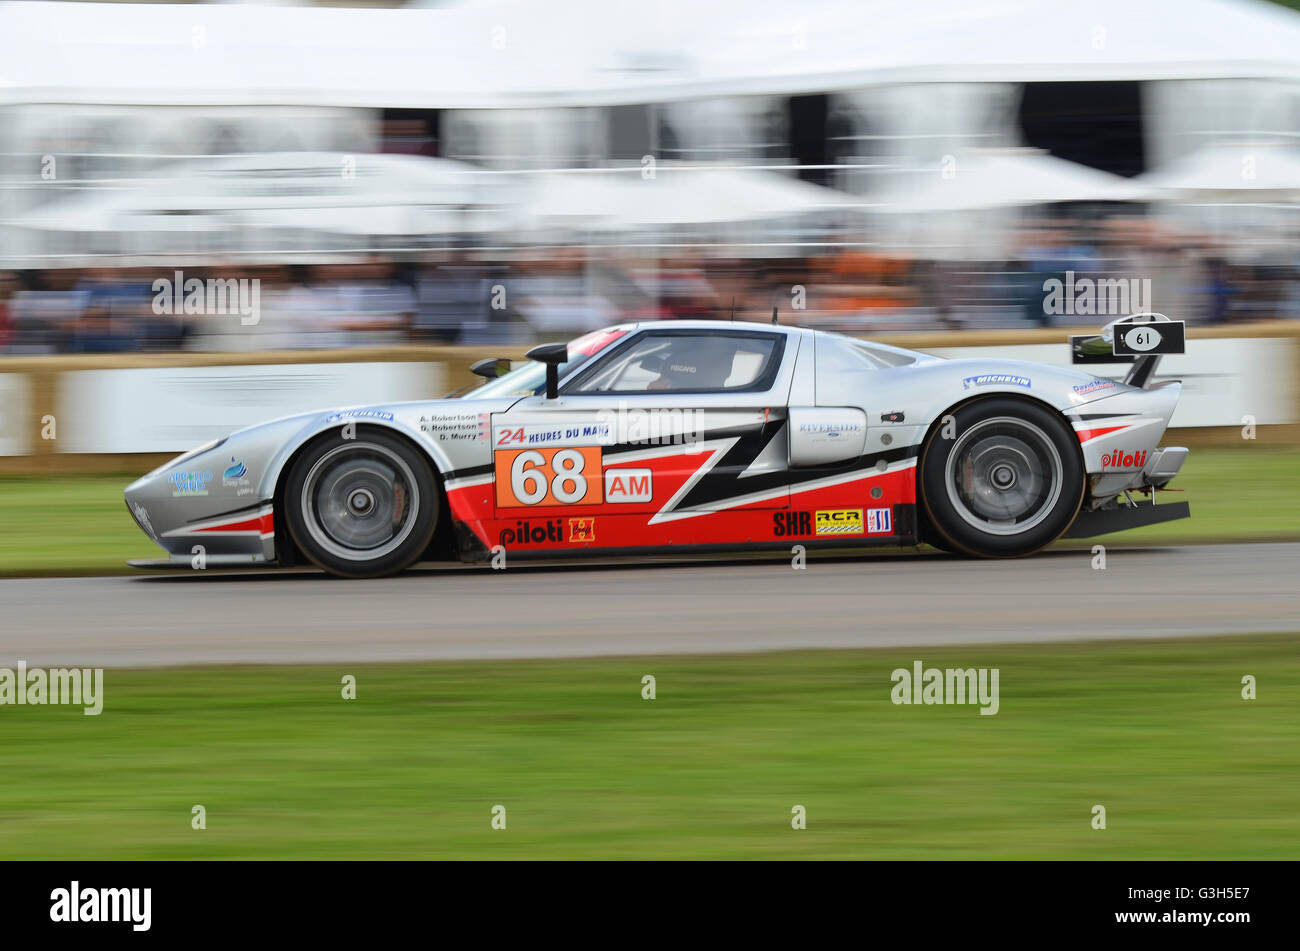 Ford Gt Lm Gte At Goodwood Festival Of Speed Stock Image